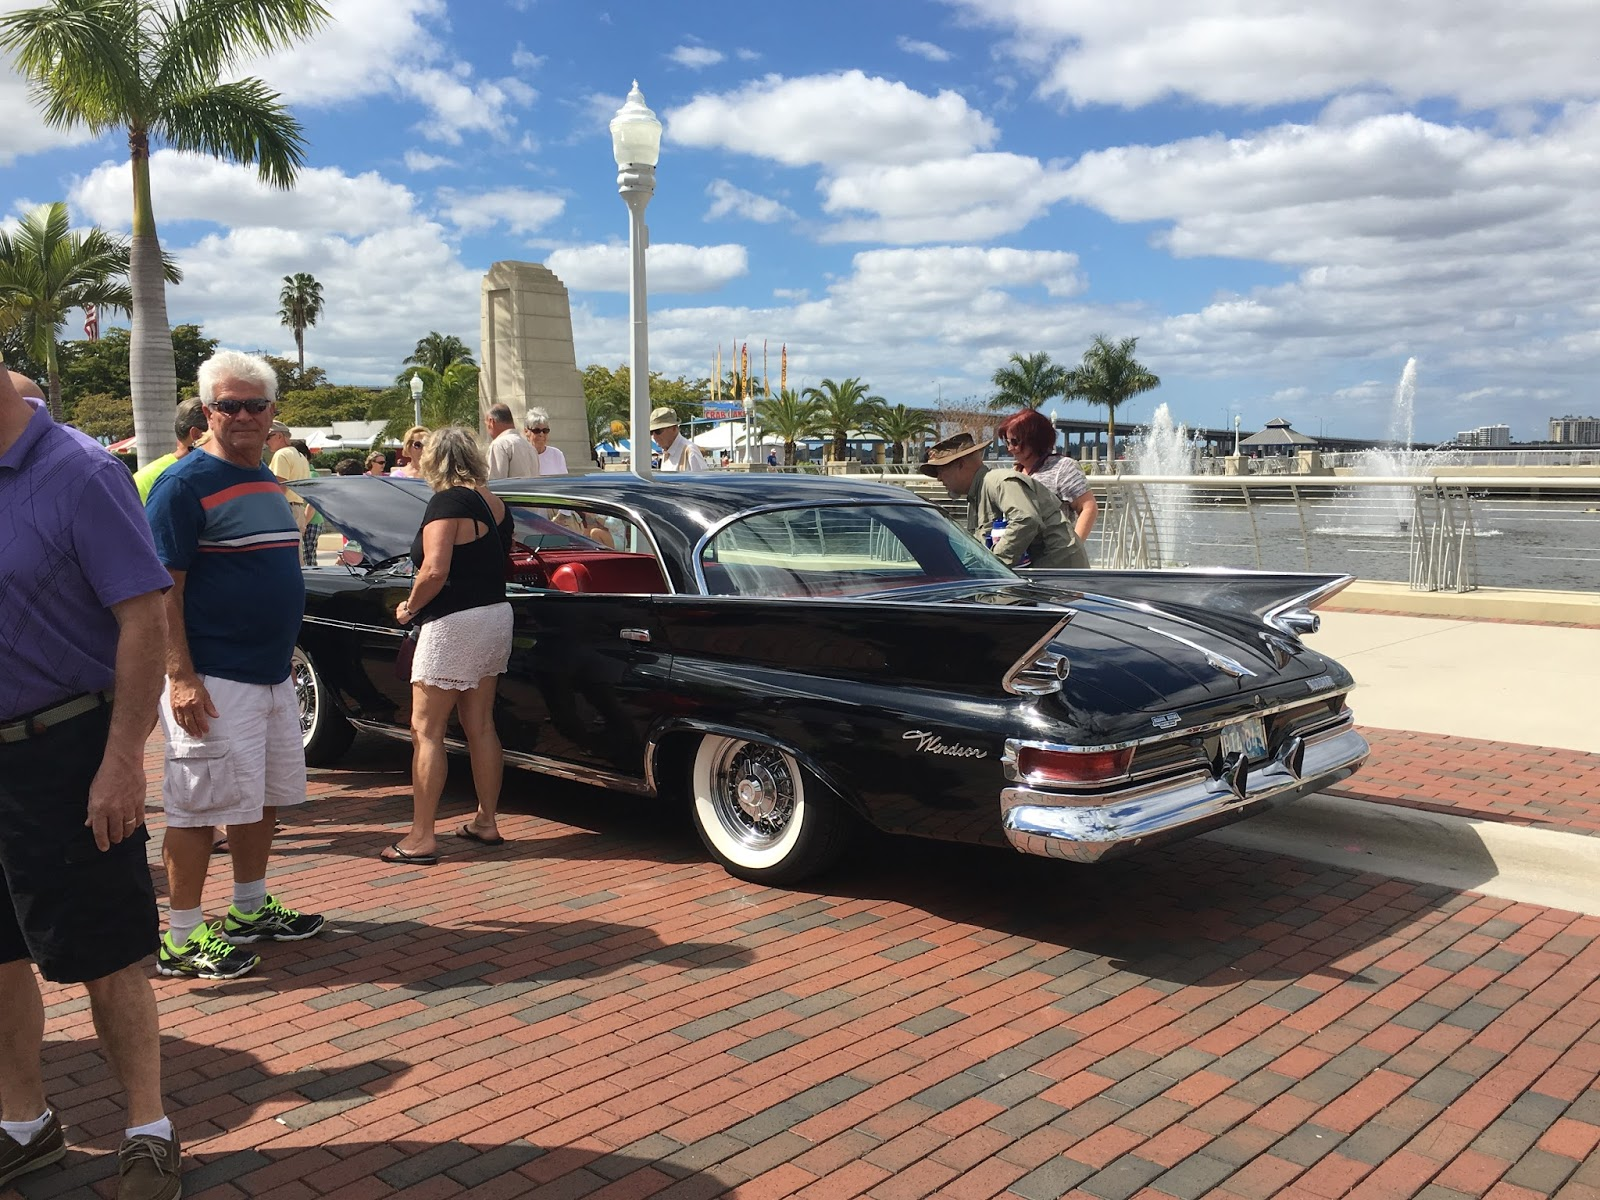 Our Adventures February - Edison car show ft myers